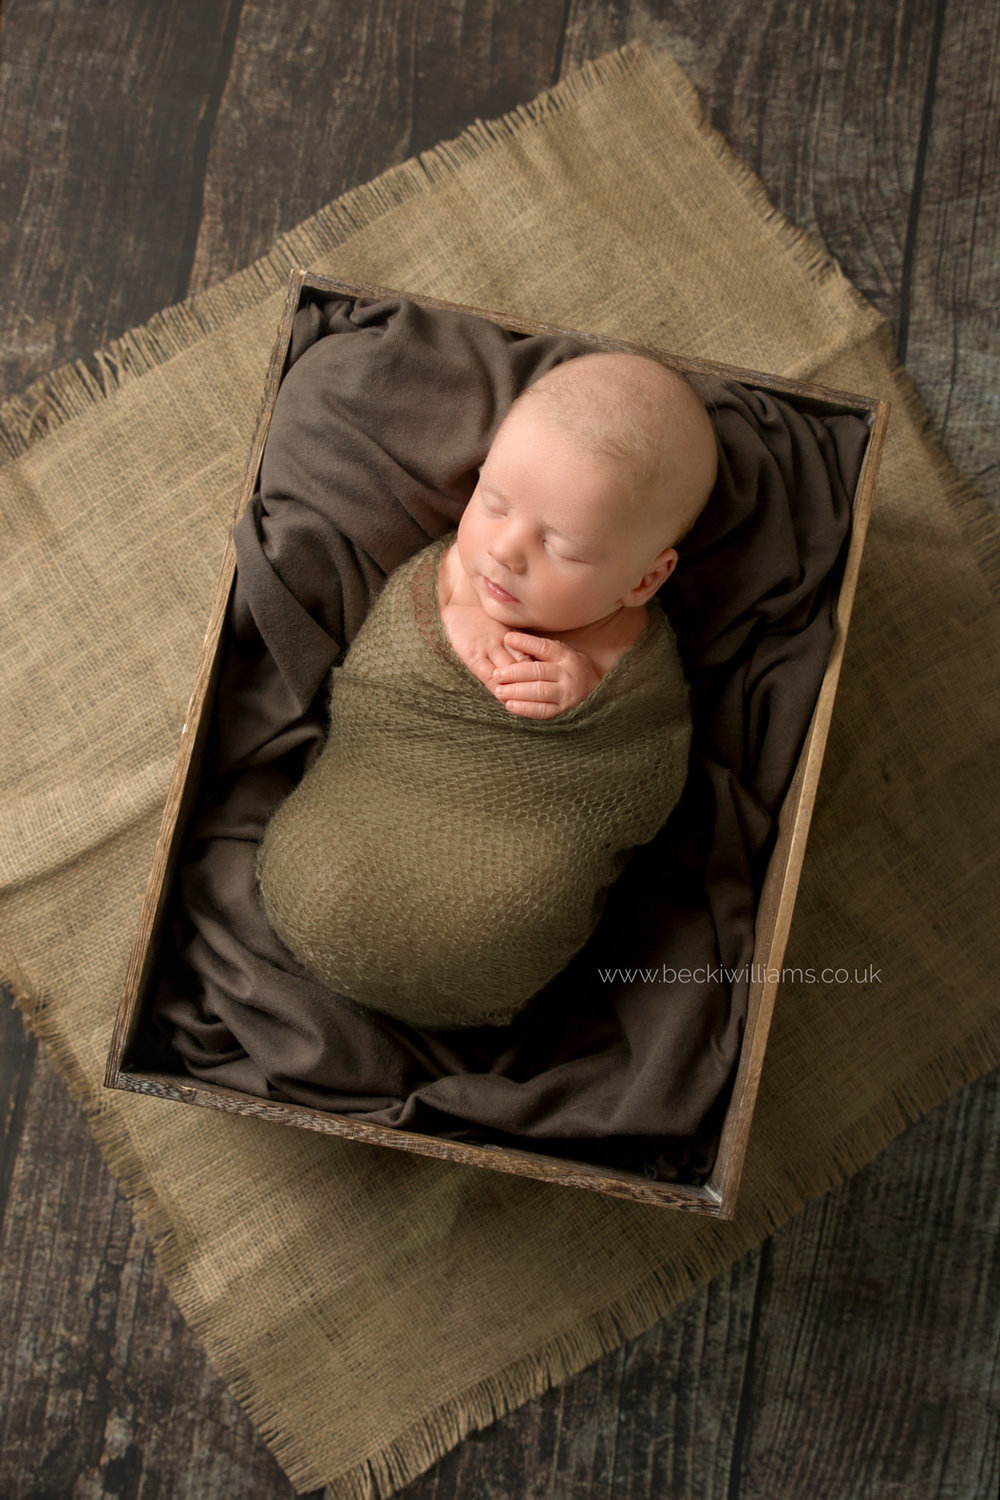 newborn-photography-hemel-hempstead-crate-brown-wrapped-sleeping.jpg